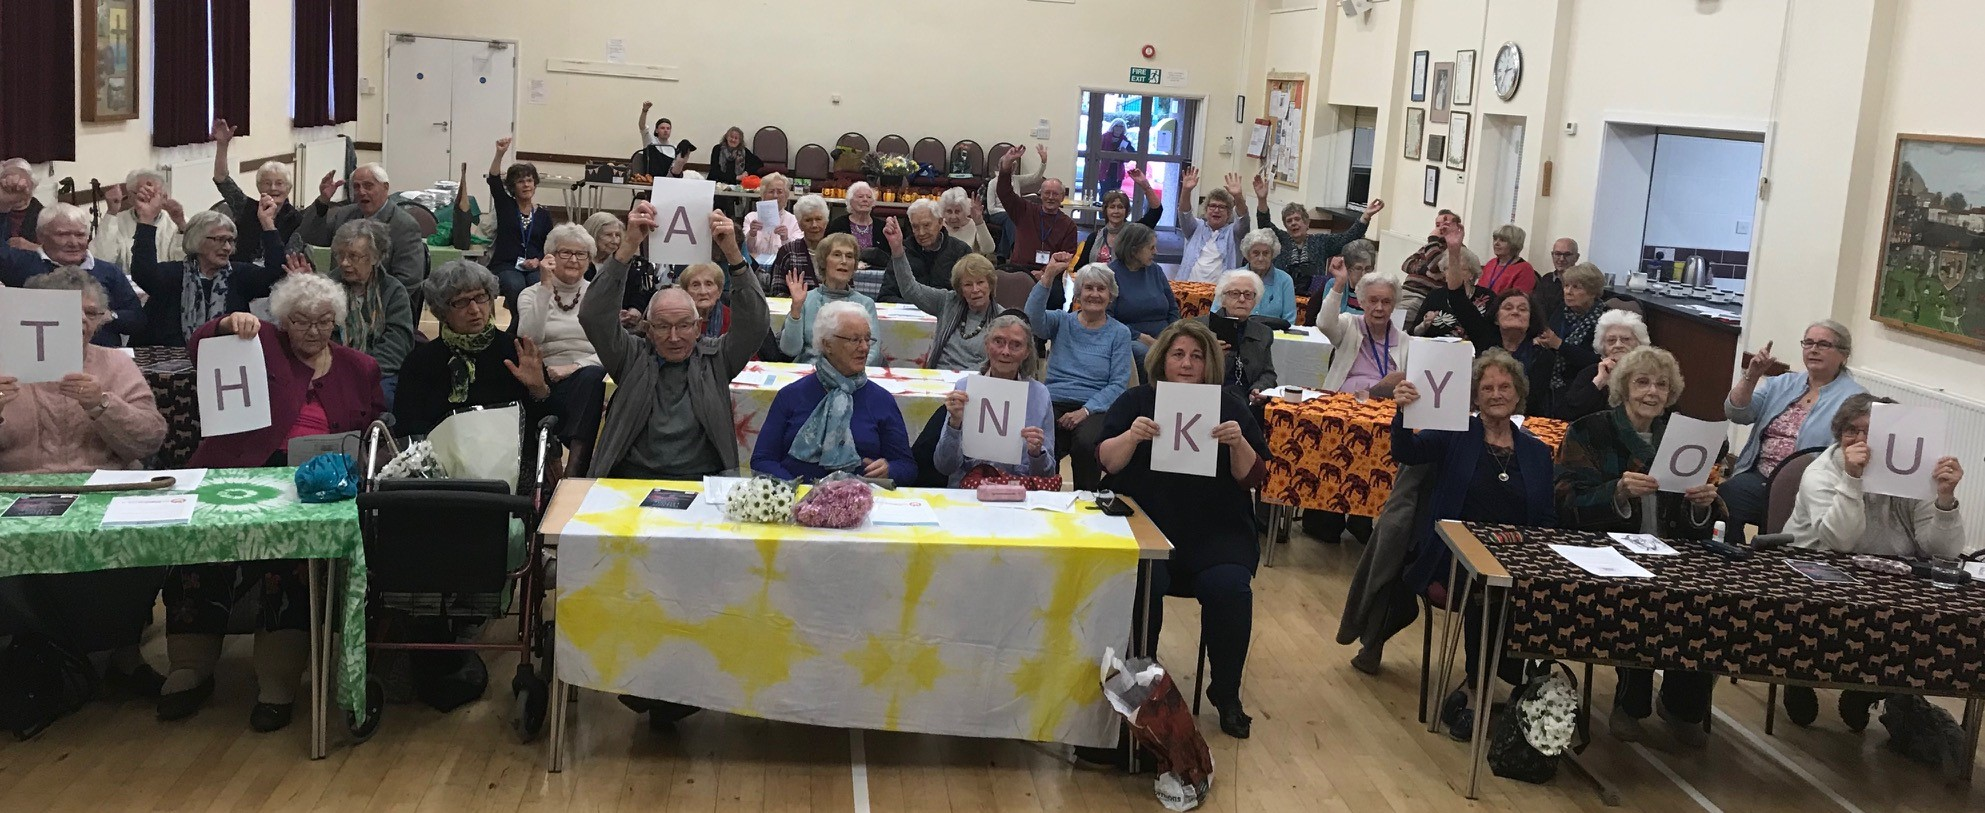 A group of elderly members of Rotherfield St Martin (RSM) hold up letters spelling out 'thank you'.